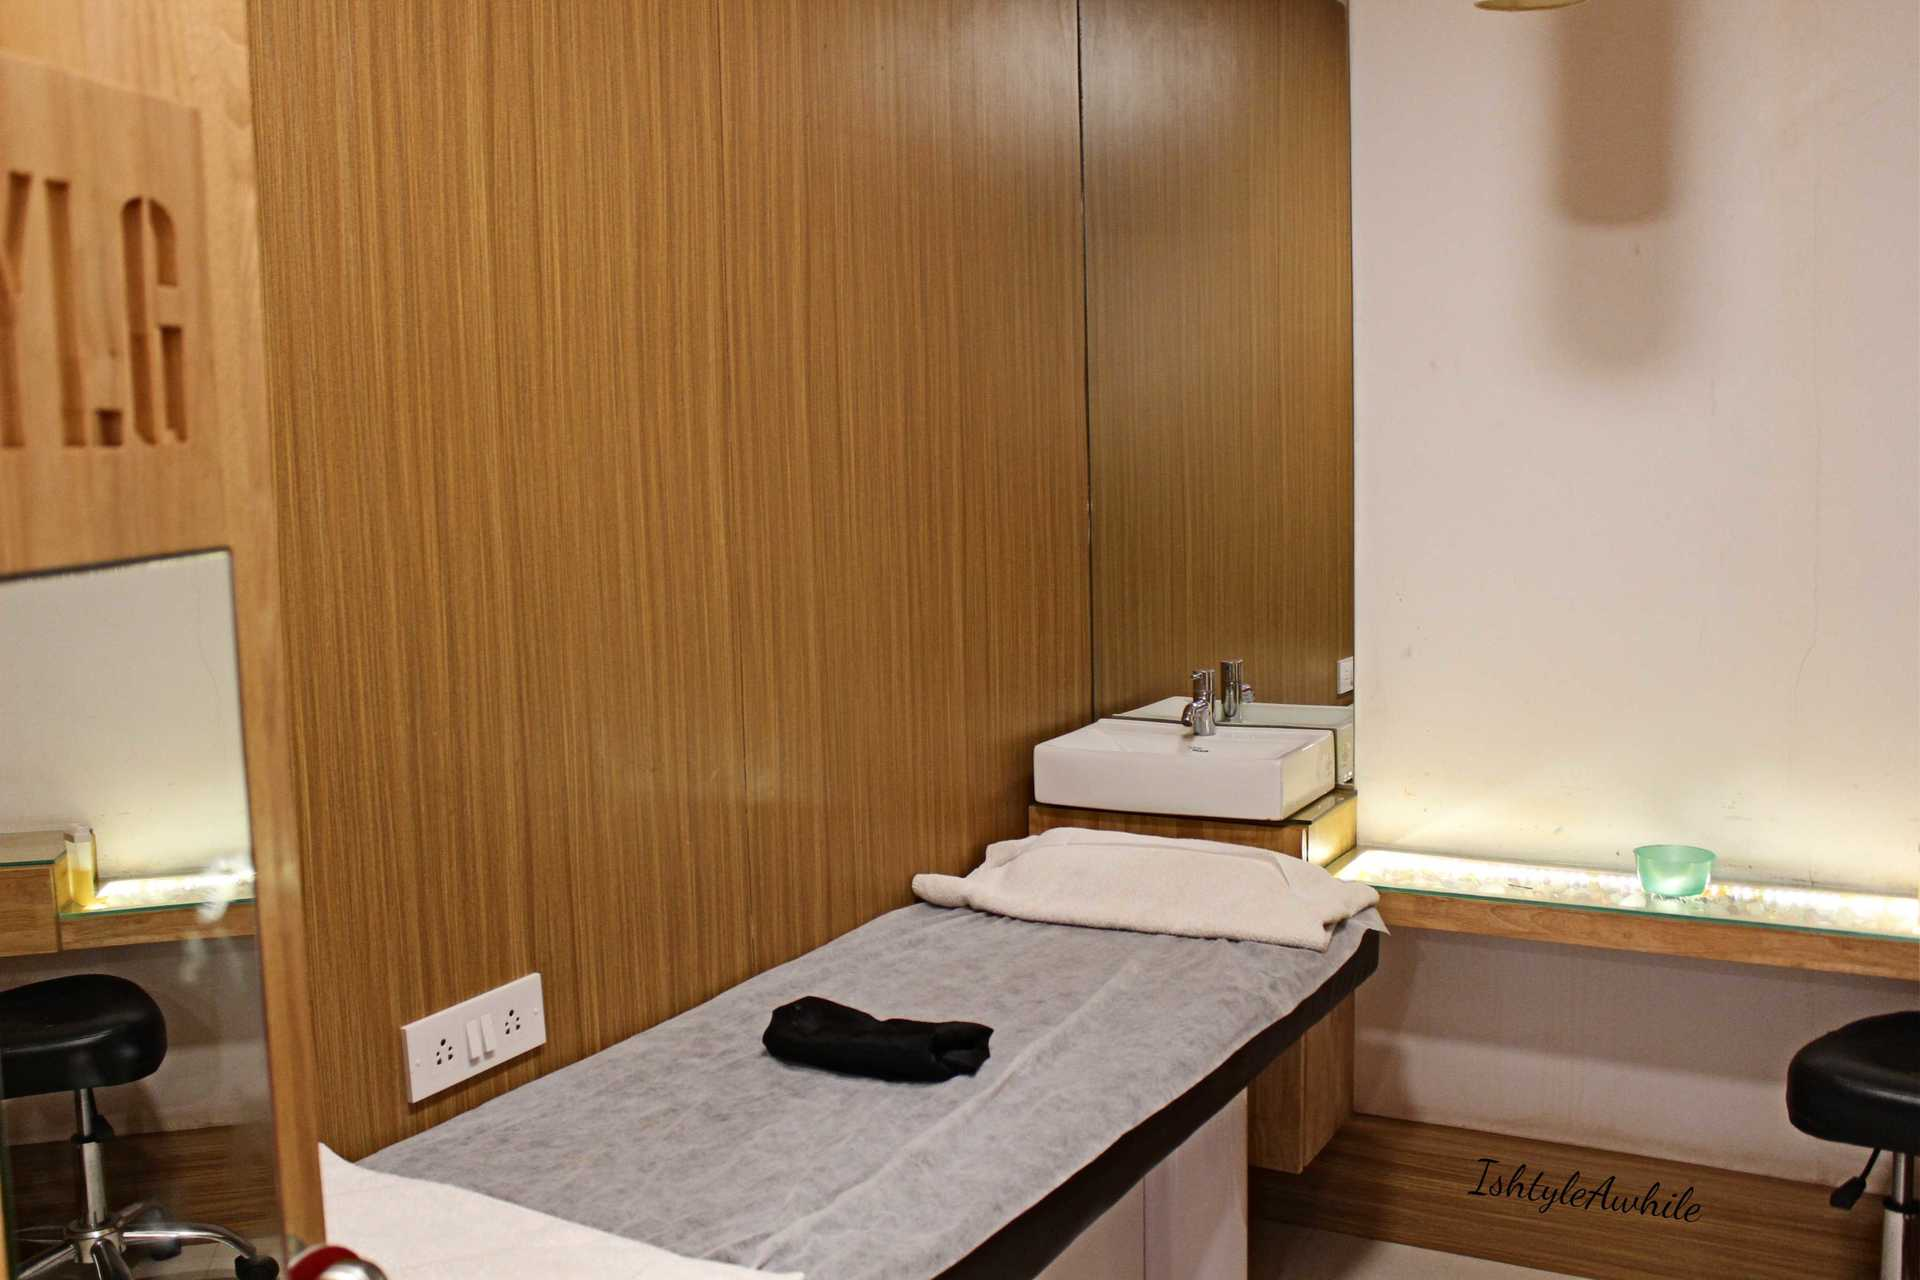 IshtyleAwhile - YLG salon adyar_review